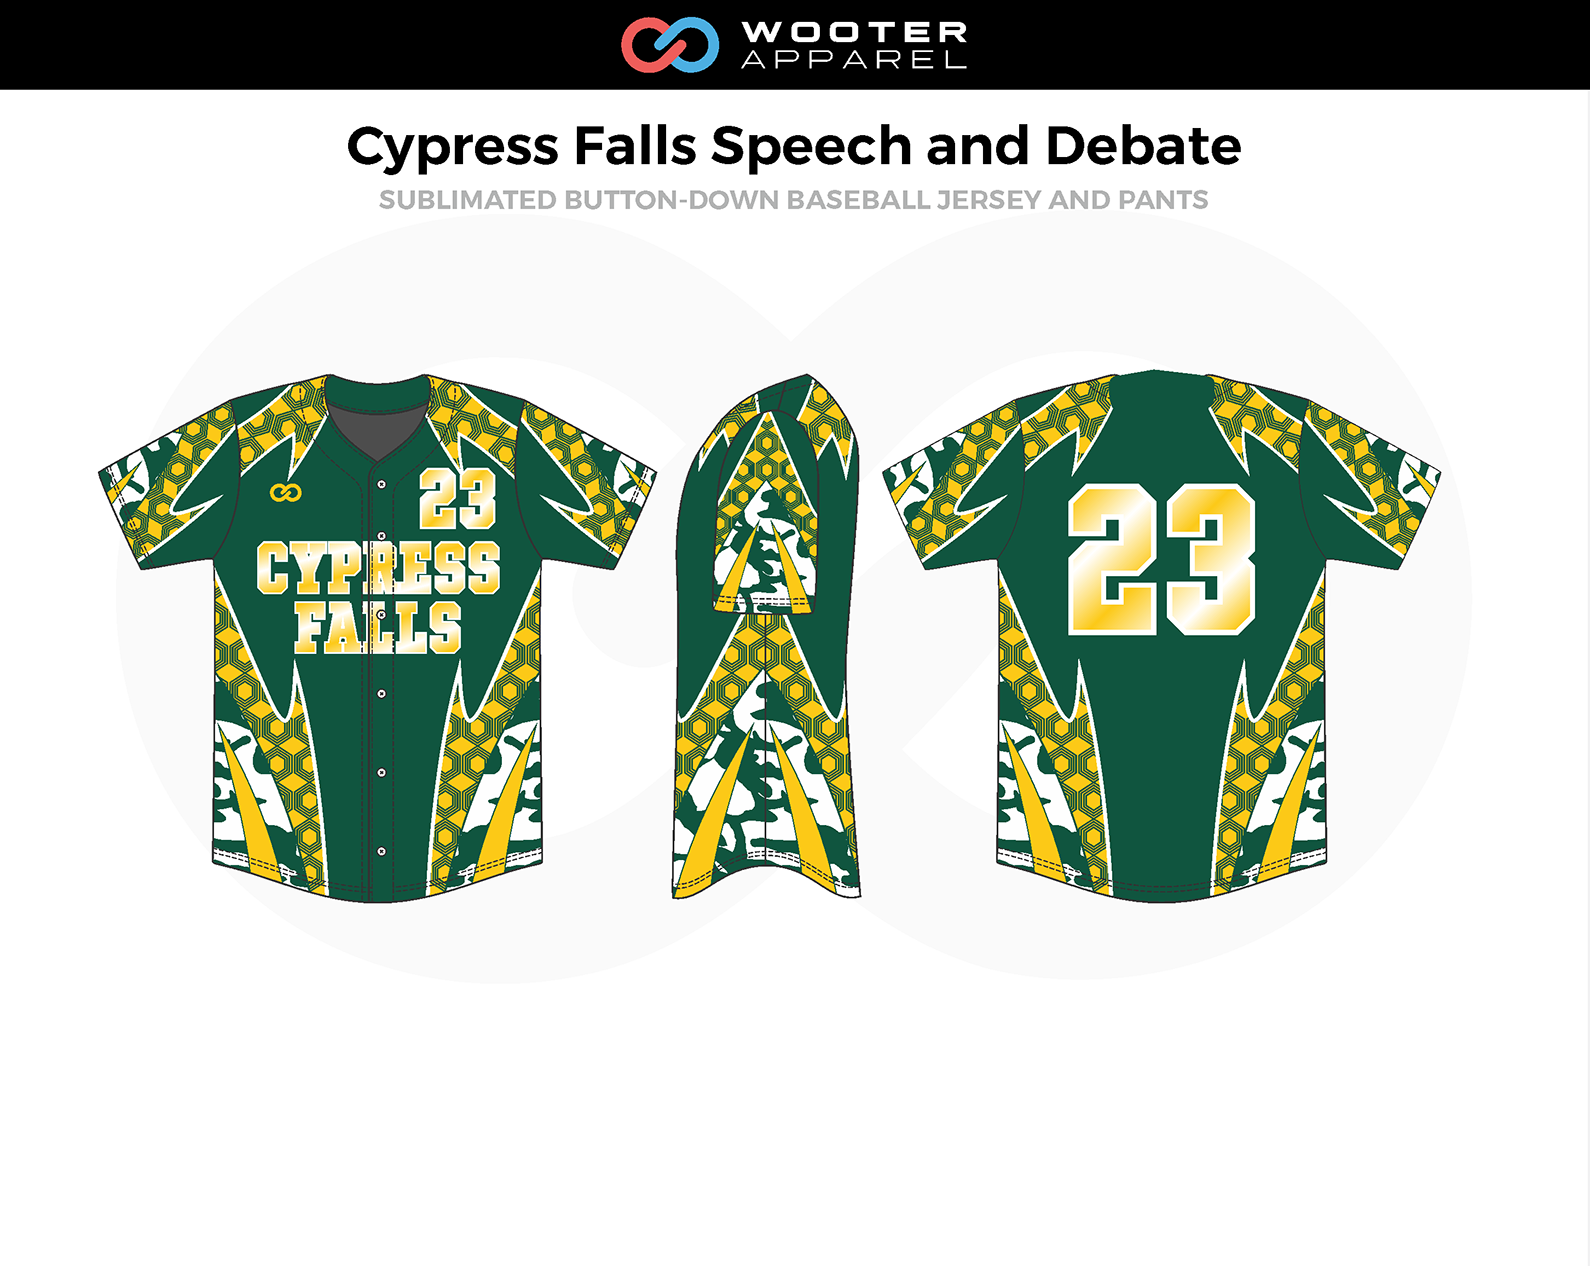 2018-09-10 Cypress Falls Speech and Debate 2.png